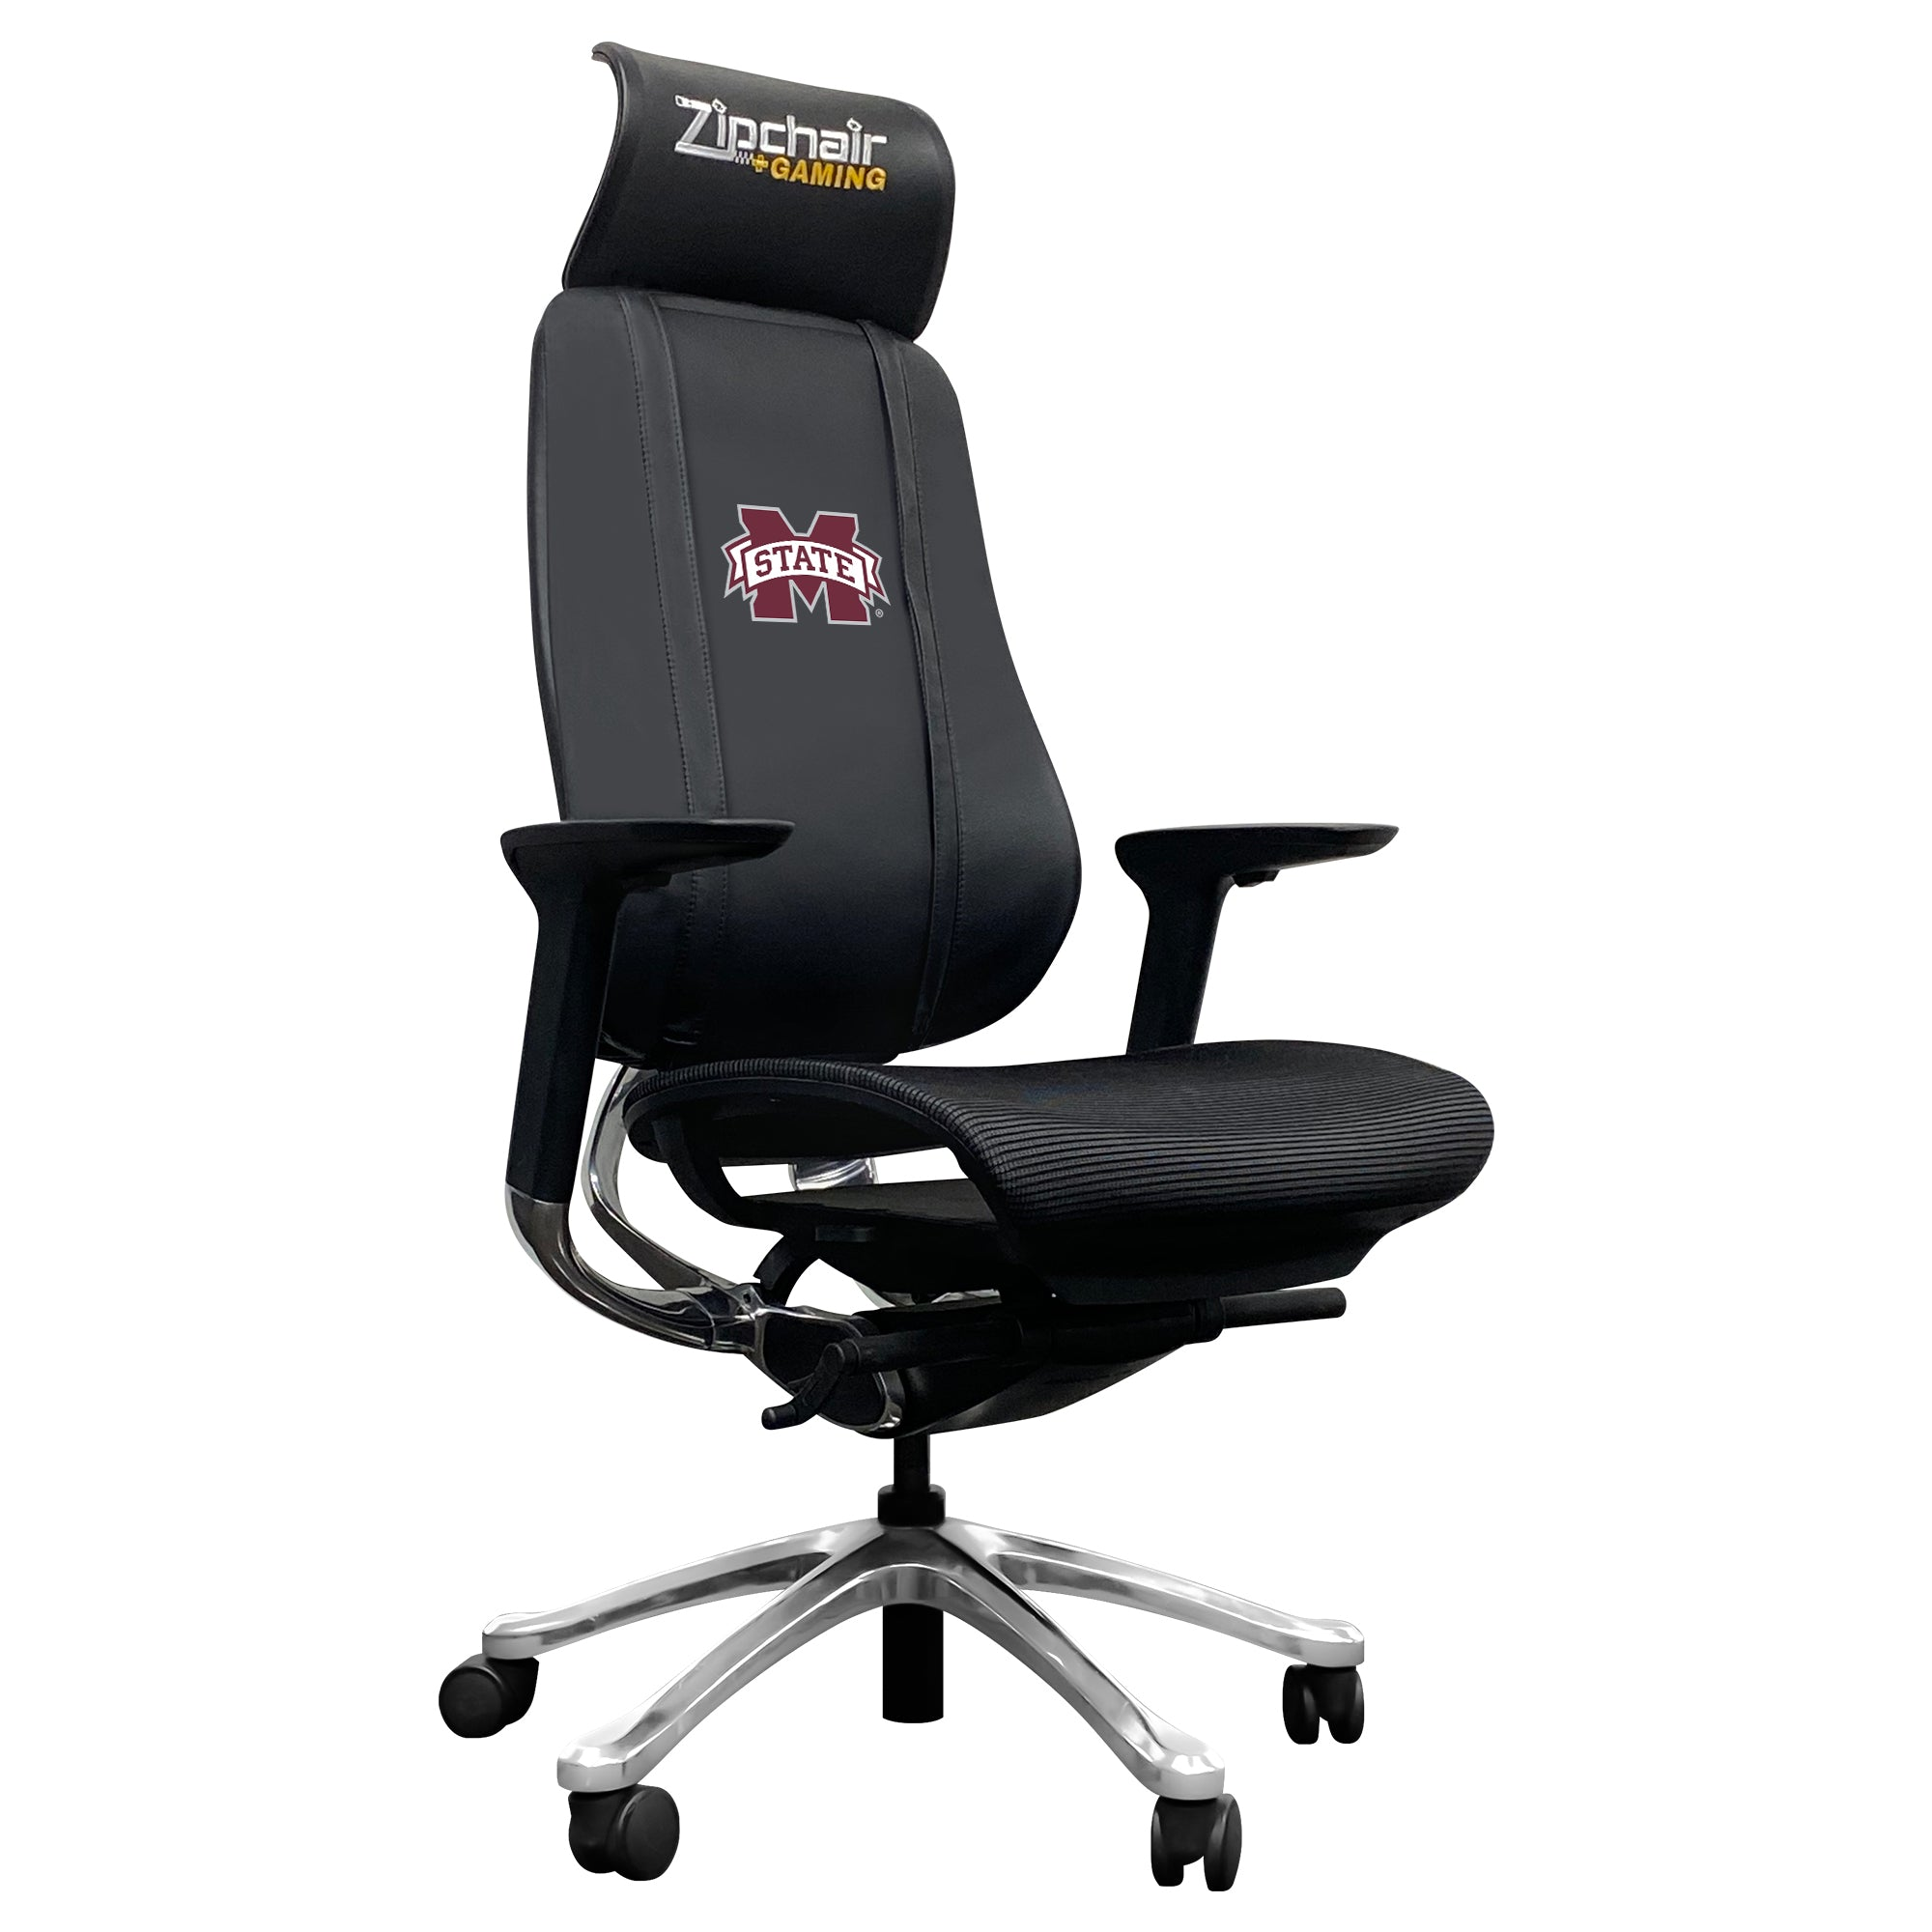 PhantomX Gaming Chair with Mississippi State Primary